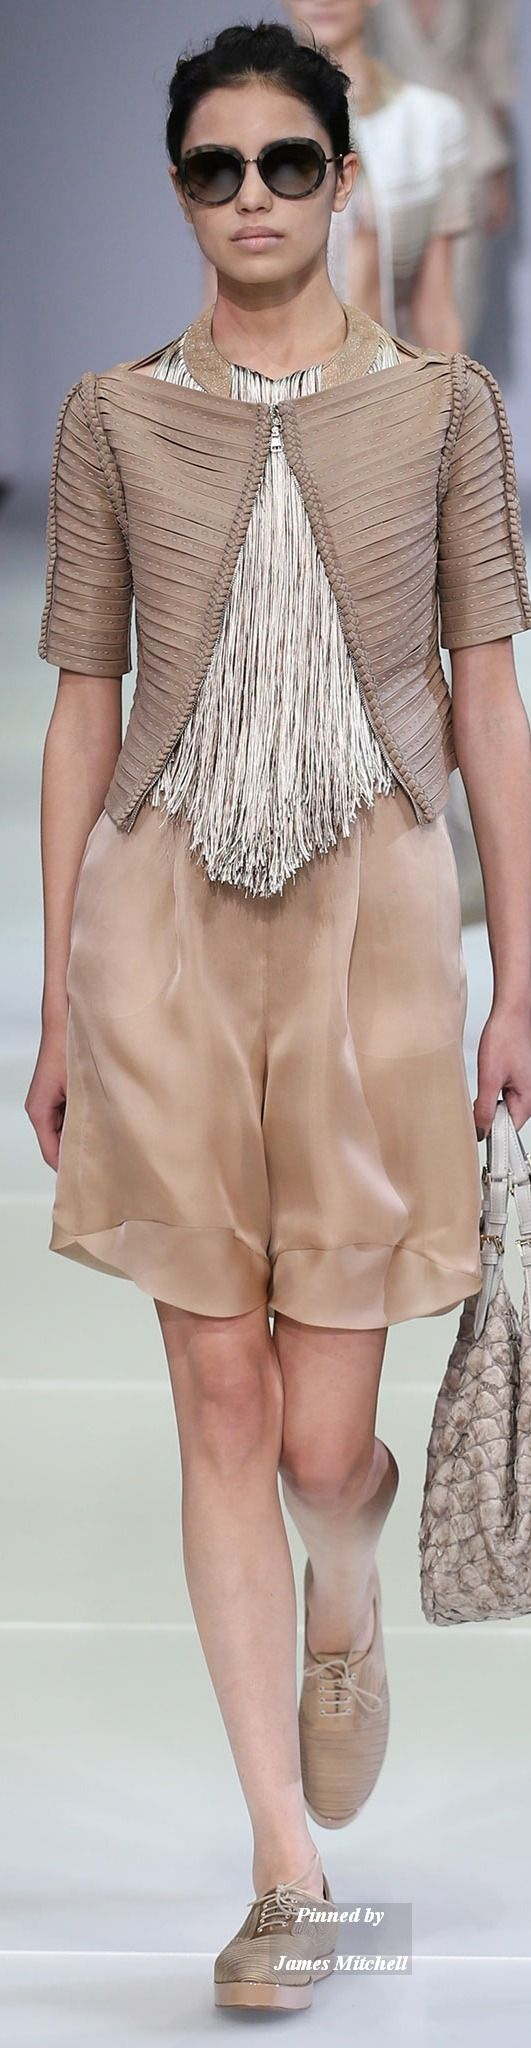 """Giorgio Armani Collection Spring 2015 Ready to Wear """"And the LORD said to Moses, """"Go to the people and consecrate them today and tomorrow. Have them wash their clothes."""" Exodus 19:10"""